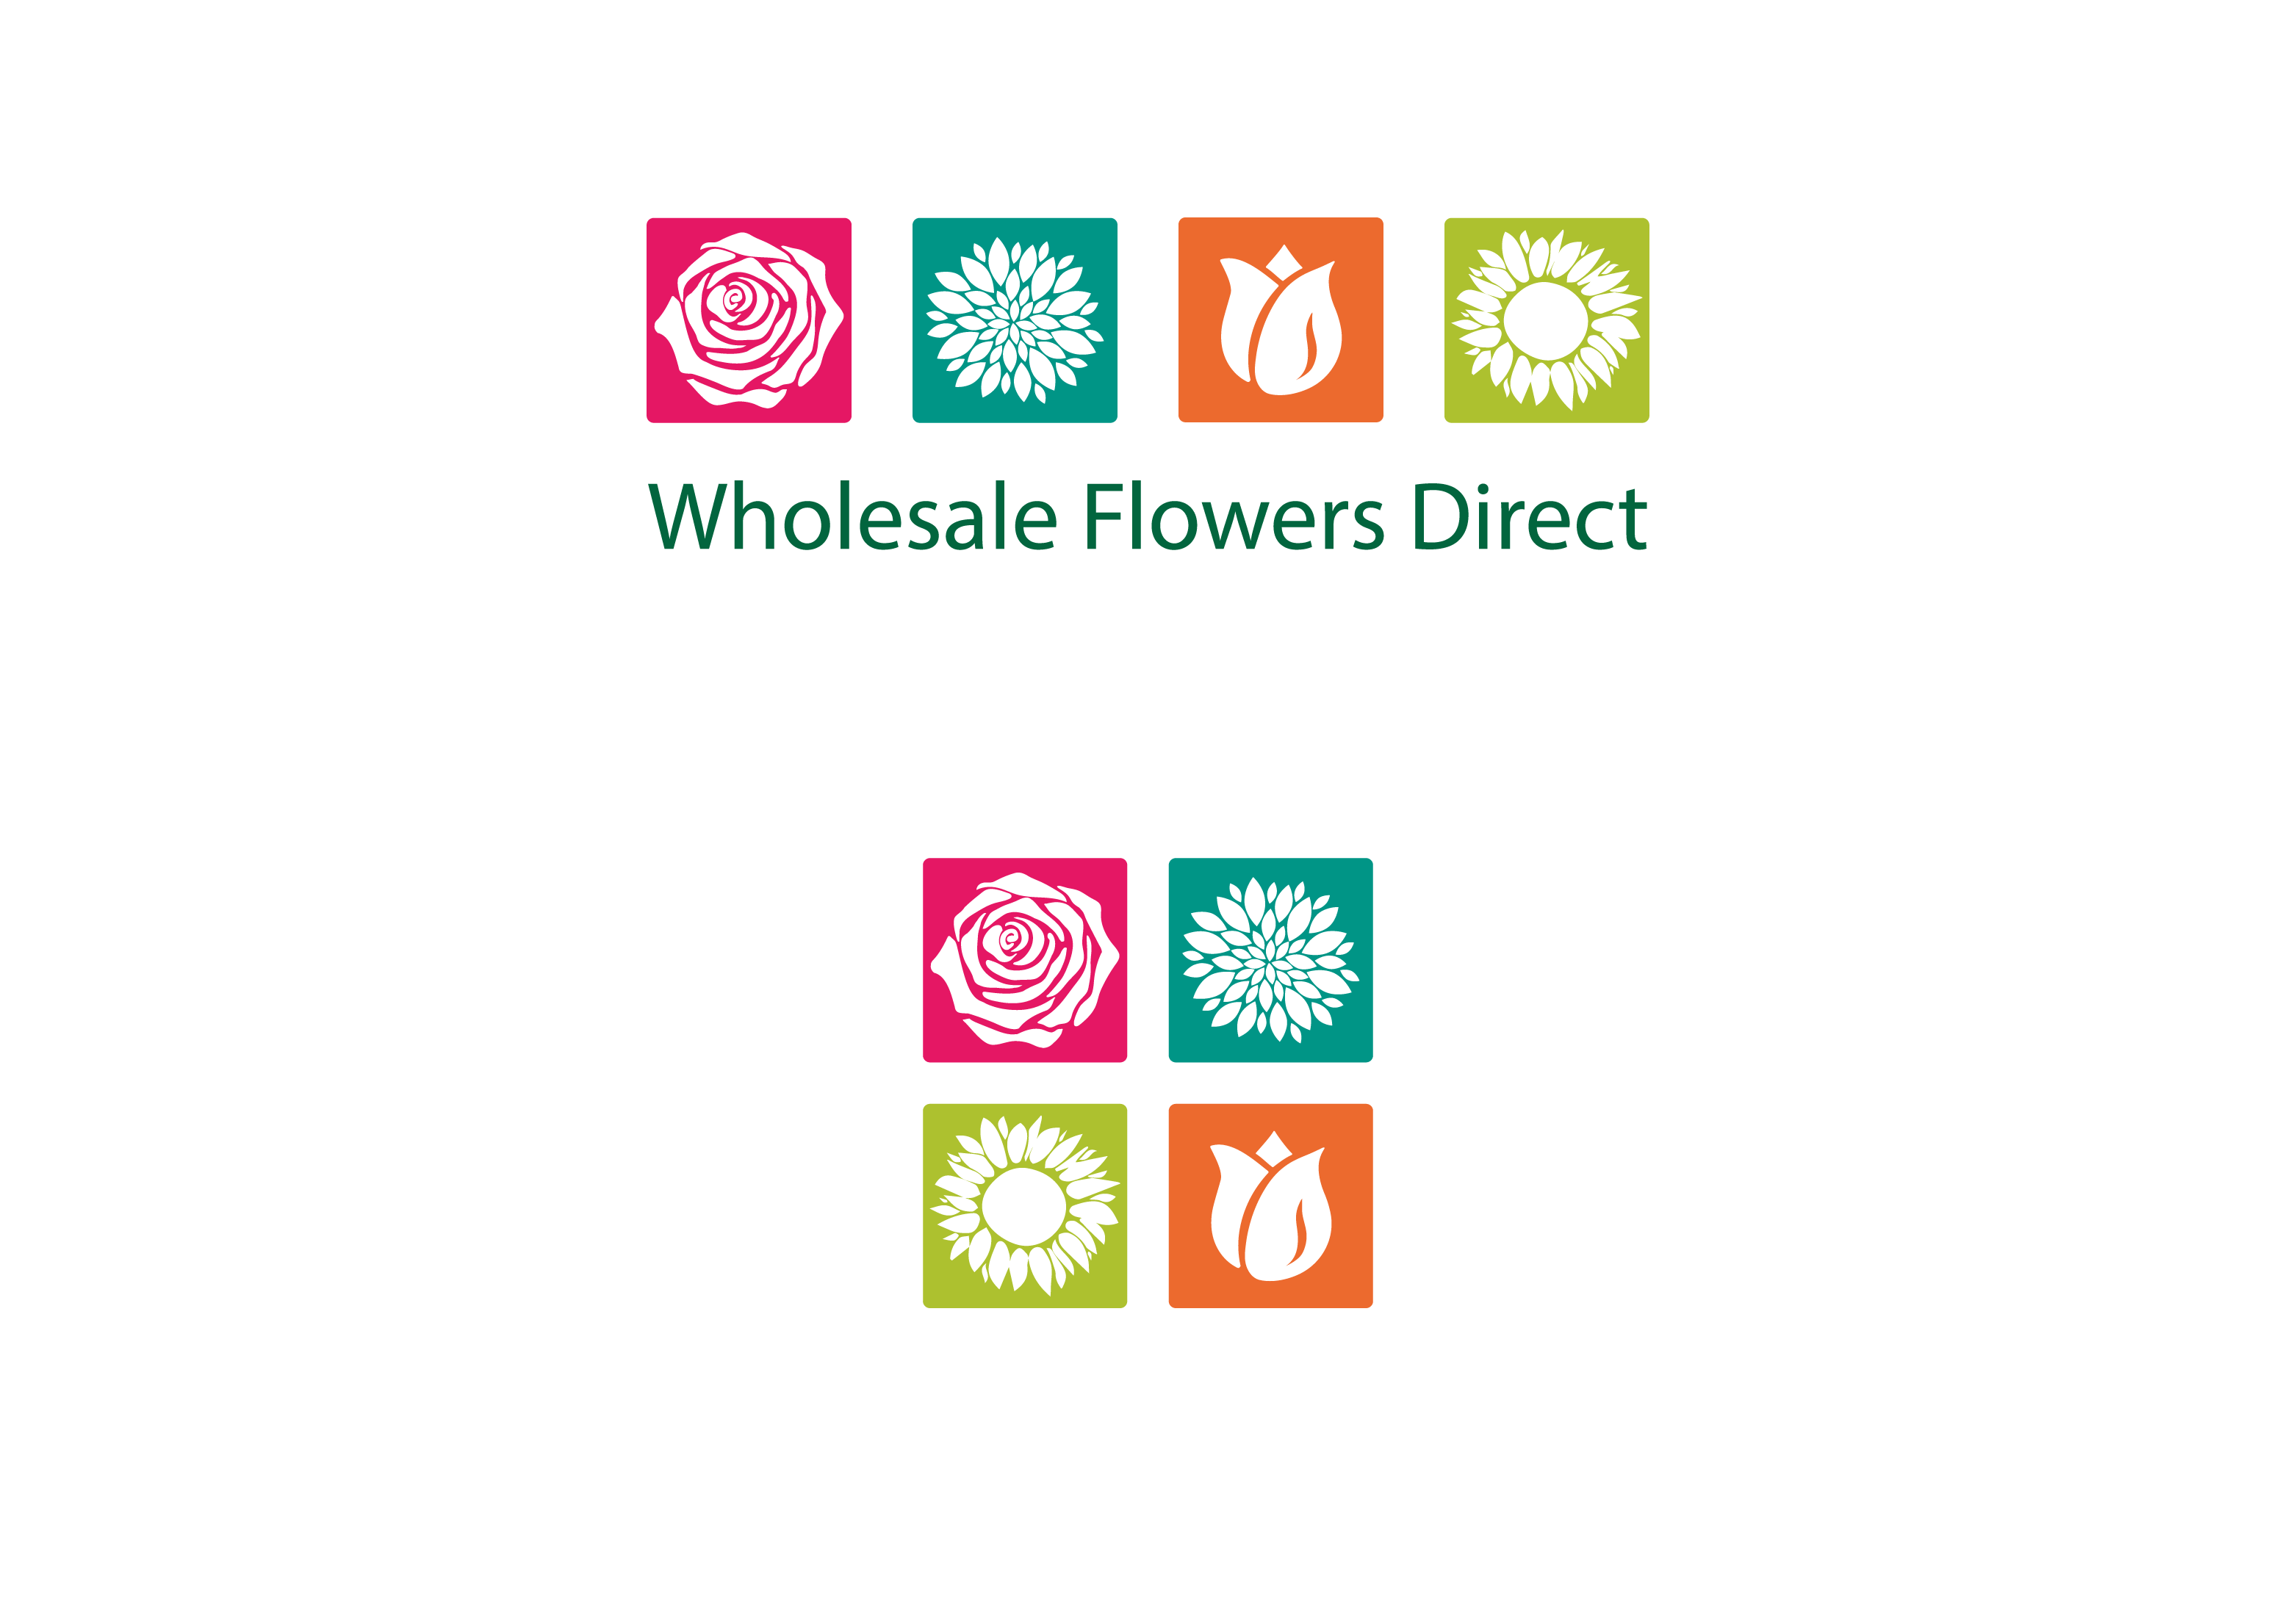 Whole Sale Flowers Direct logo